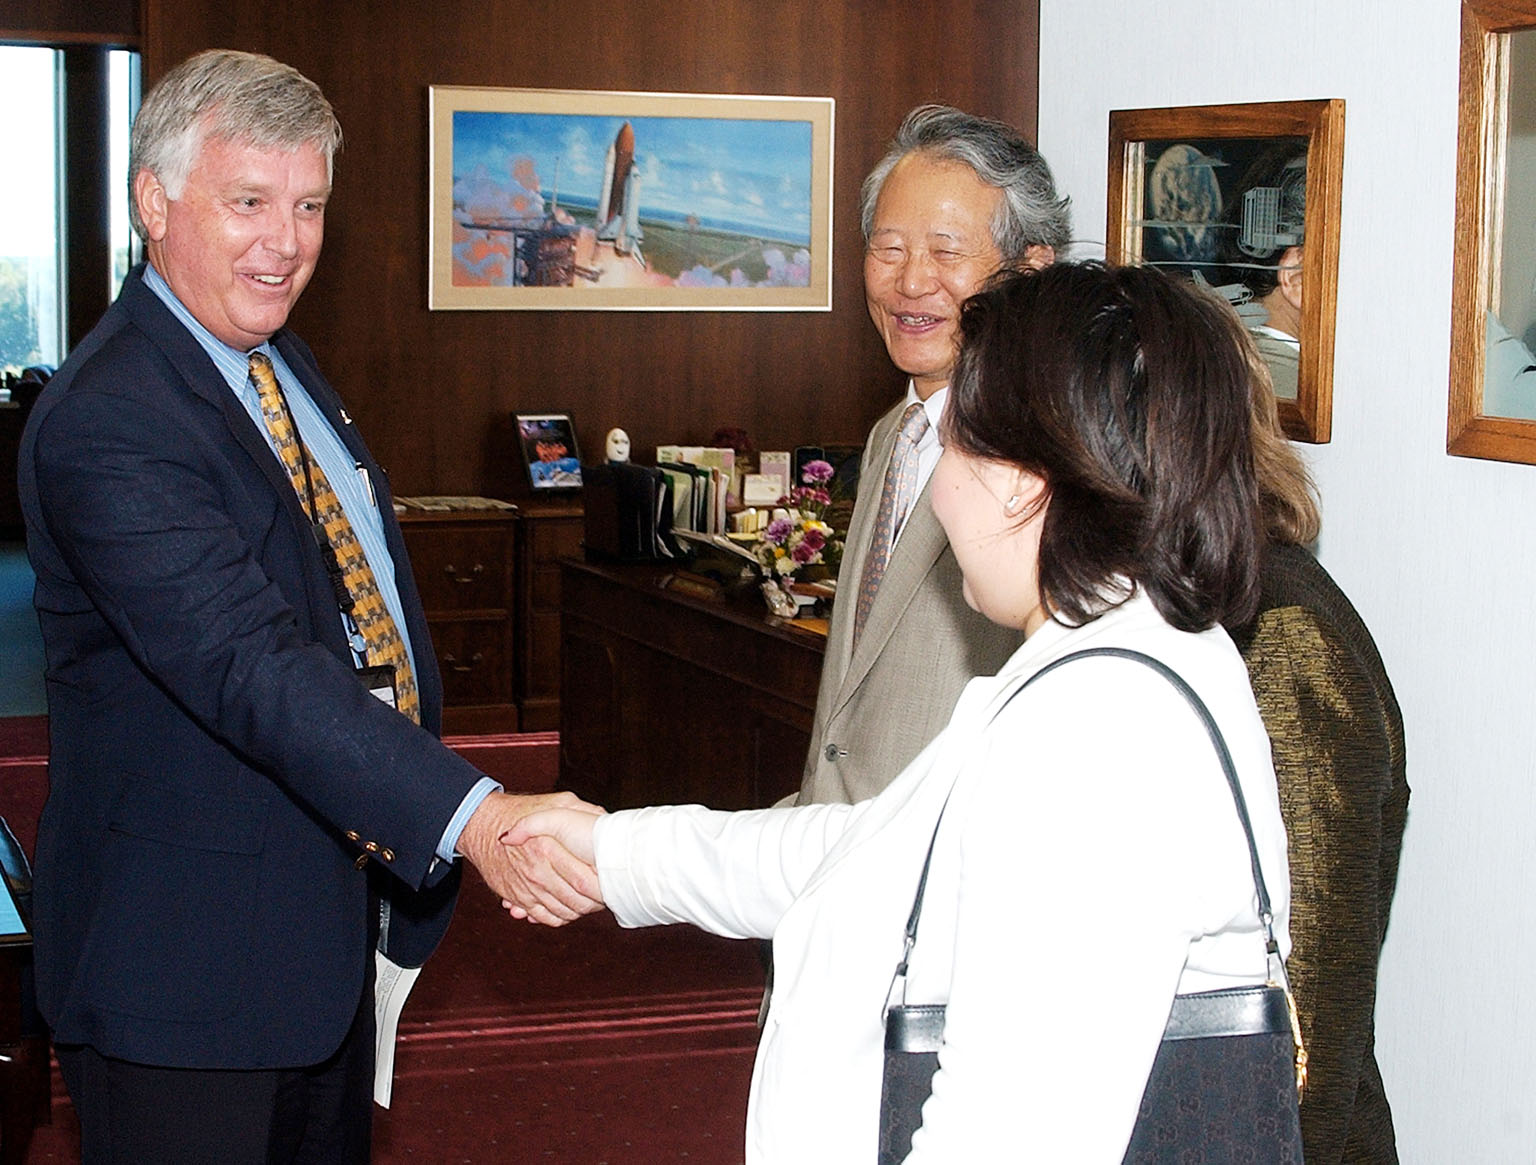 KENNEDY SPACE CENTER, FLA. - KSC Director James W. Kennedy receives Consul General of Japan Ko Kodaira and his family in his office in Headquarters Building during their visit to Kennedy Space Center (KSC). From left are Kennedy, Kodaira, his wife Marie (partially hidden), and his daughter Reiko. Kodaira is touring the facilities at KSC at the invitation of the local office of the National Space Development Agency of Japan (NASDA) to acquaint him with KSC's unique processing capabilities.